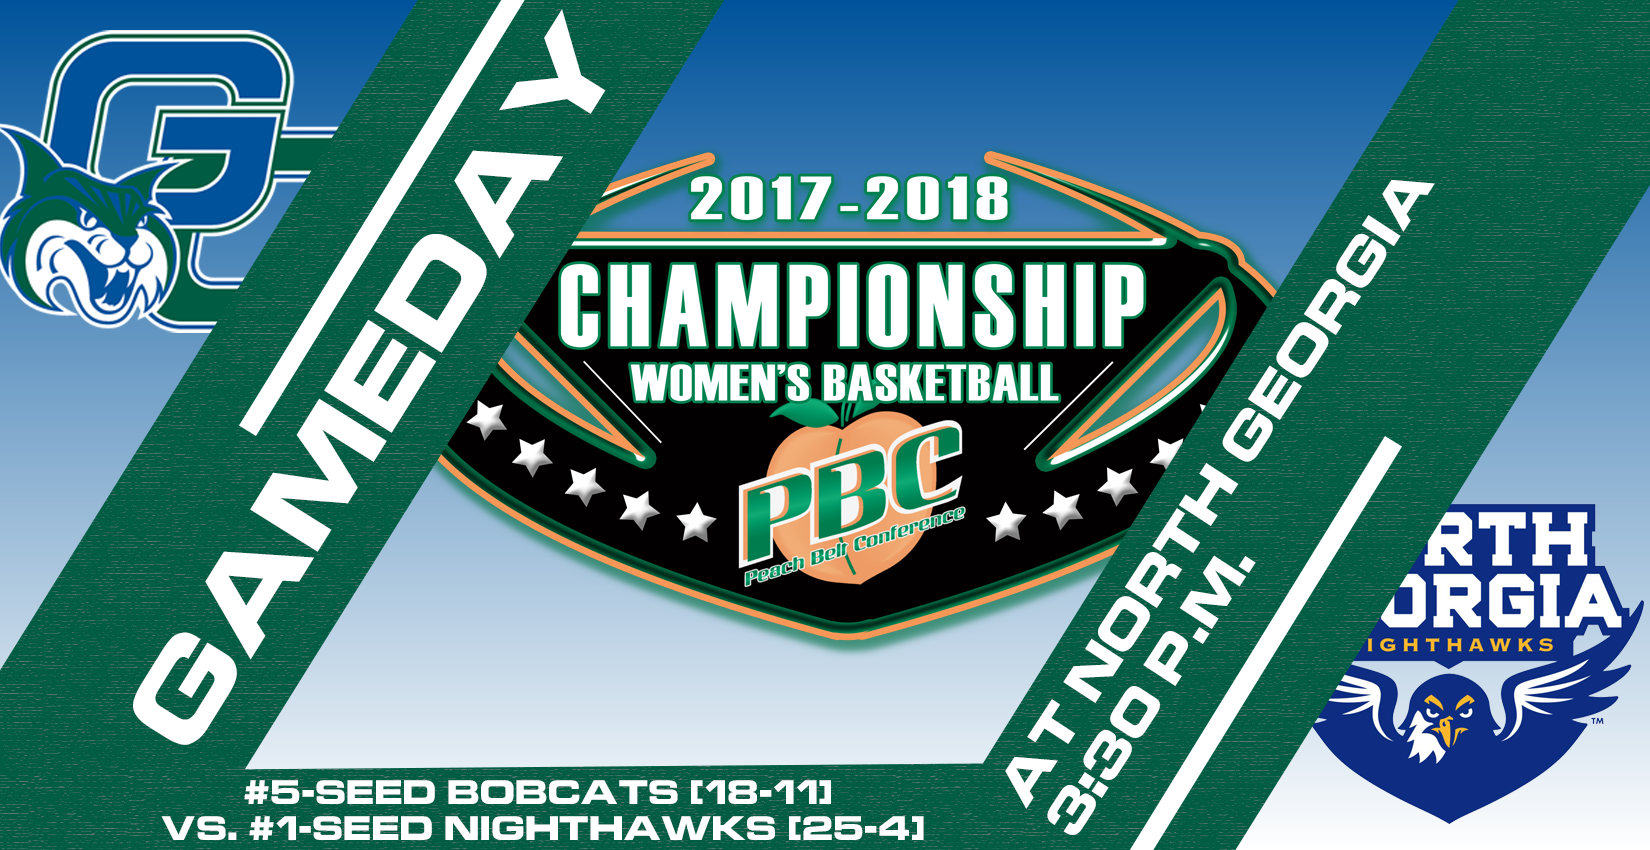 GAMEDAY: GC Women's Basketball Travels to North Georgia for PBC Semifinal